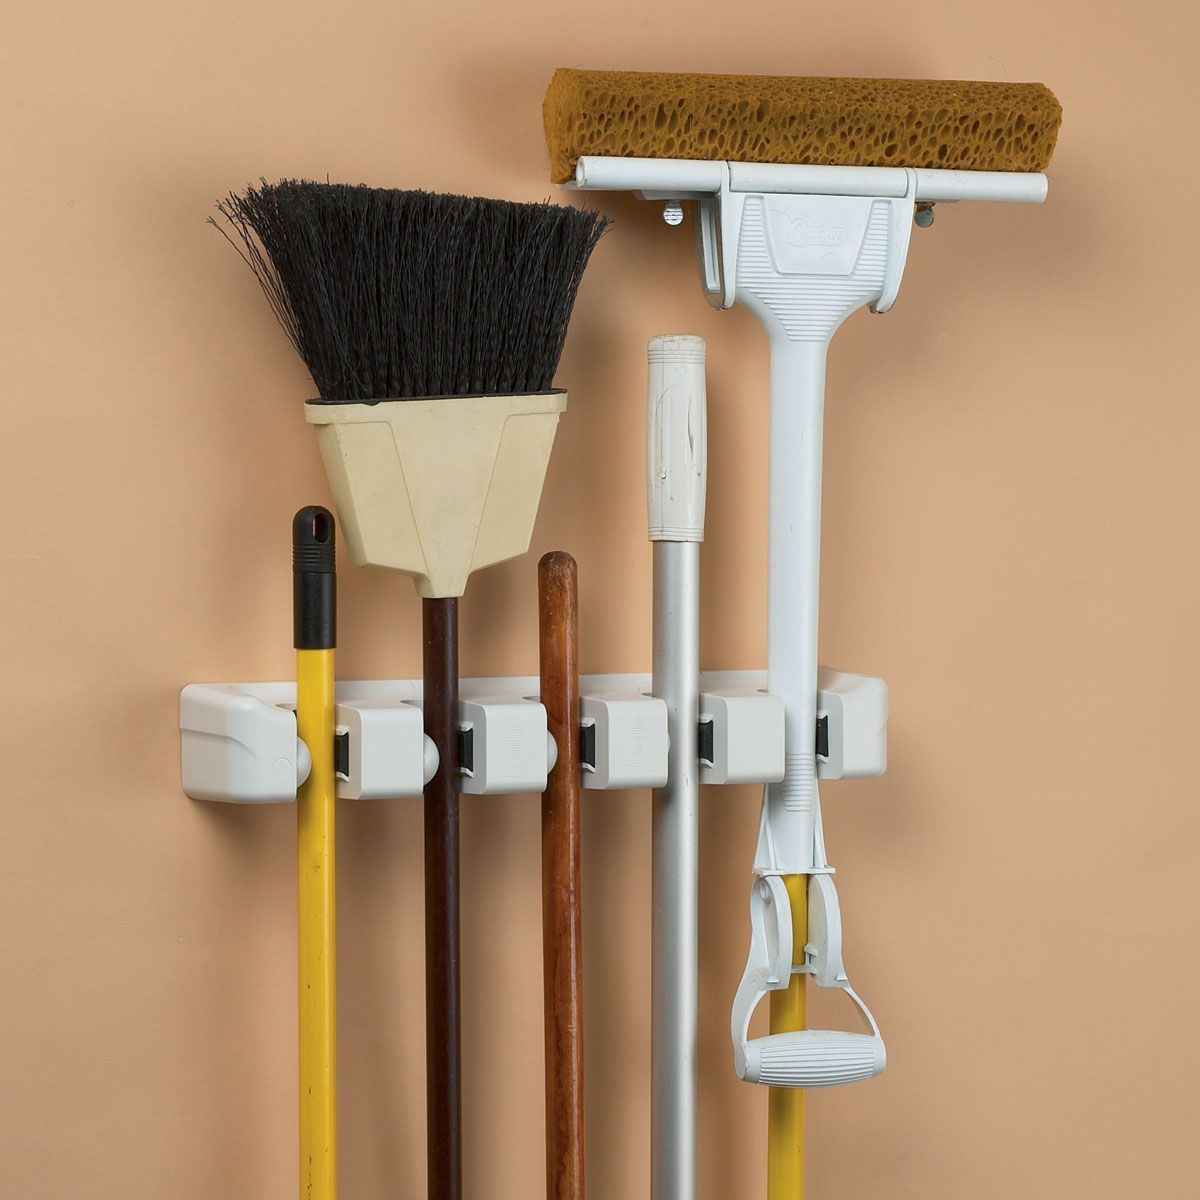 Broom U0026 Mop Holder